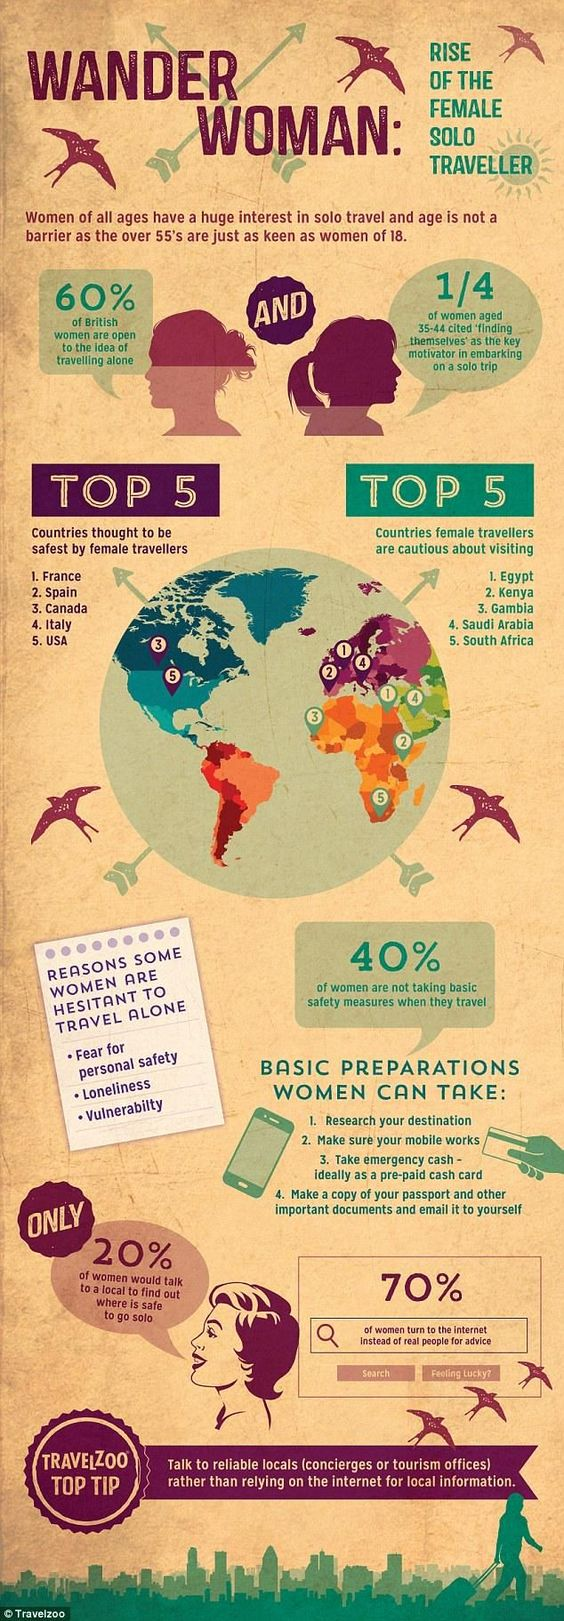 Here is a great Infographic for Female Solo Travellers. I found them very useful. www.digitalnomad.directory: